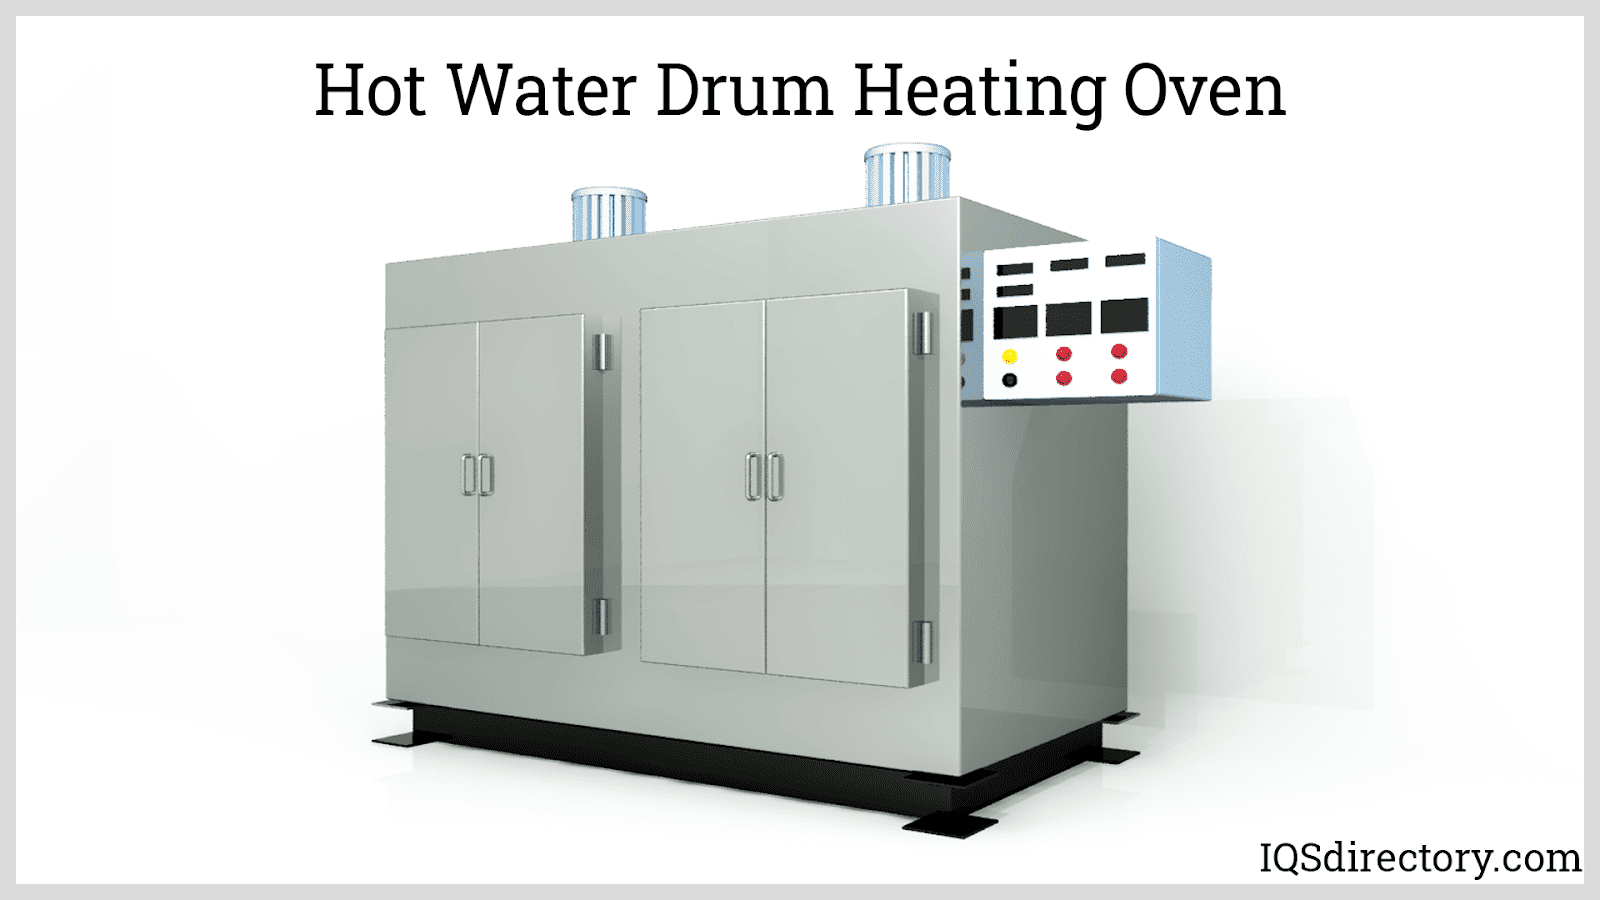 How Water Drum Heating Oven